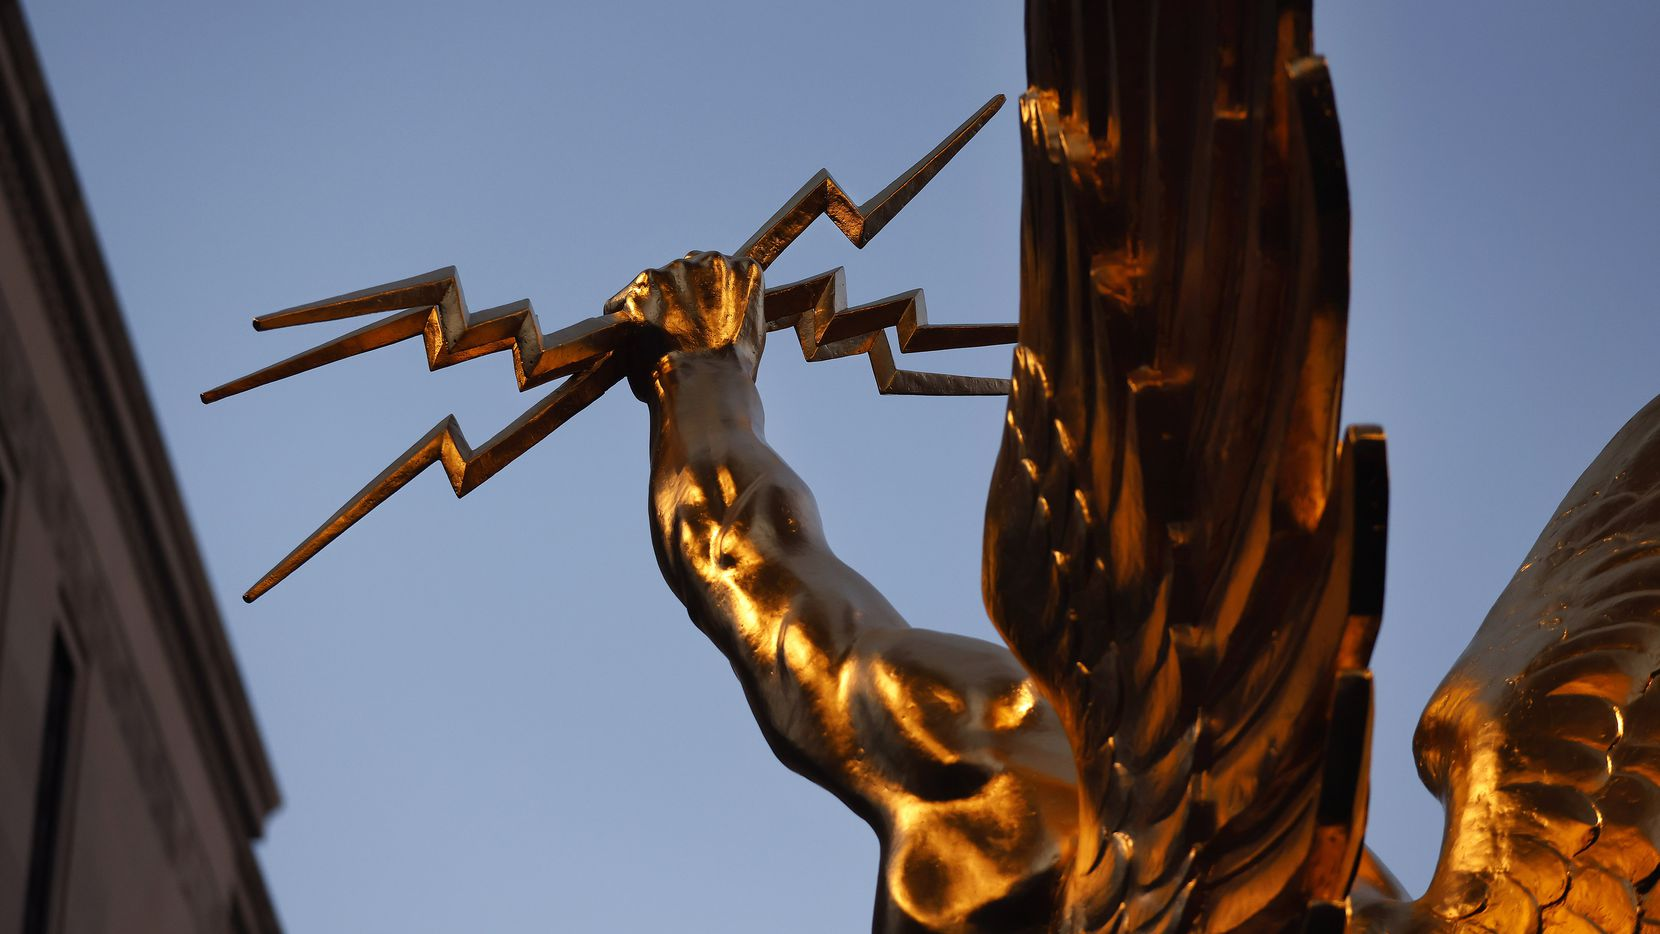 Golden Boy, the Spirit of Communication statue, is pictured in the new AT&T Discovery District in downtown Dallas, Tuesday, April 20, 2021. The statue, originally called Genius of Telegraphy, stood atop AT&T's headquarters in New York City decades ago.